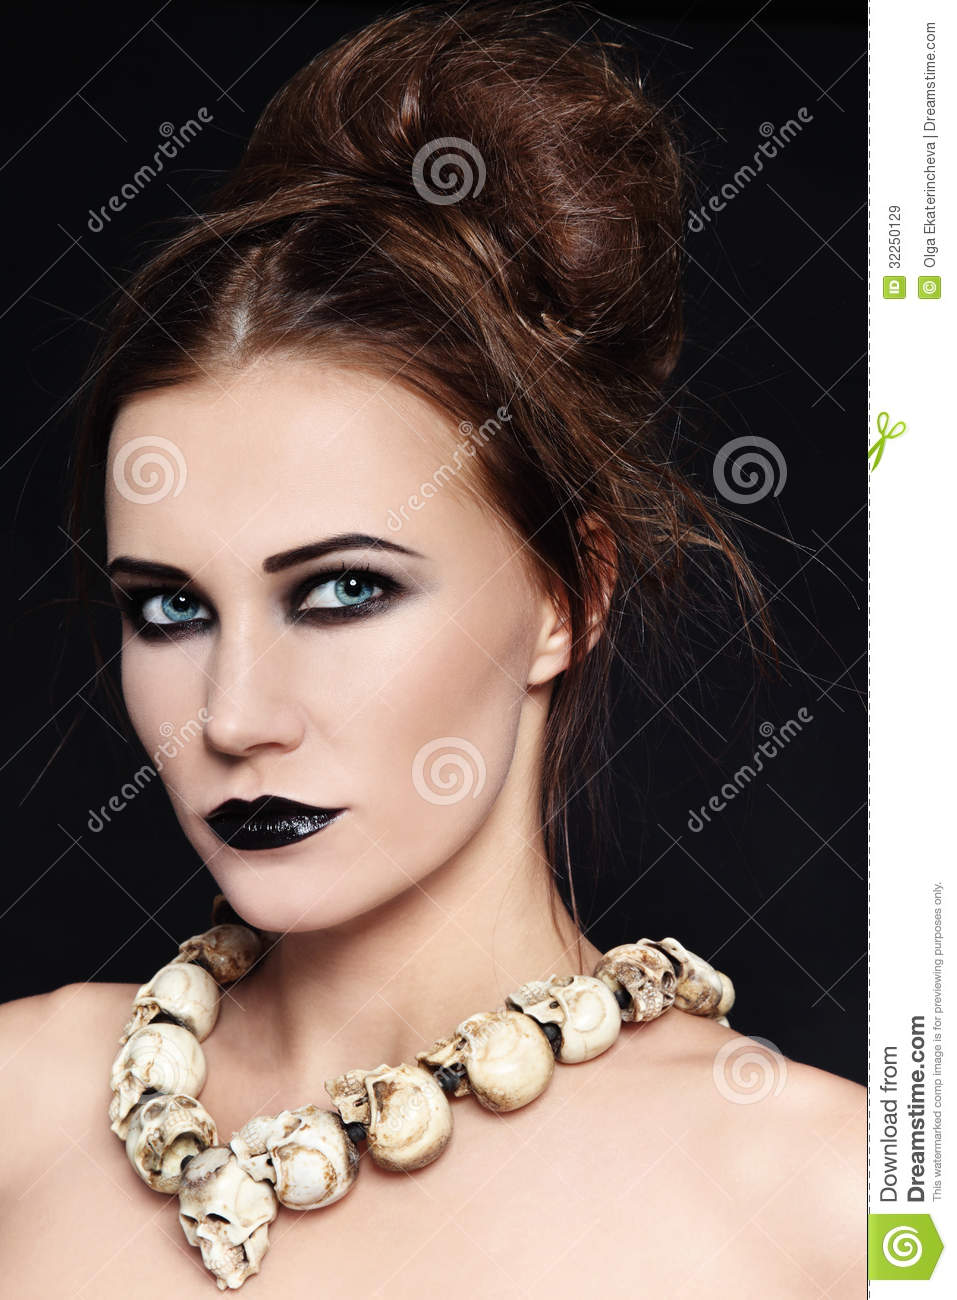 Evil angel royalty free stock images image 32250129 - Free evil angel pictures ...